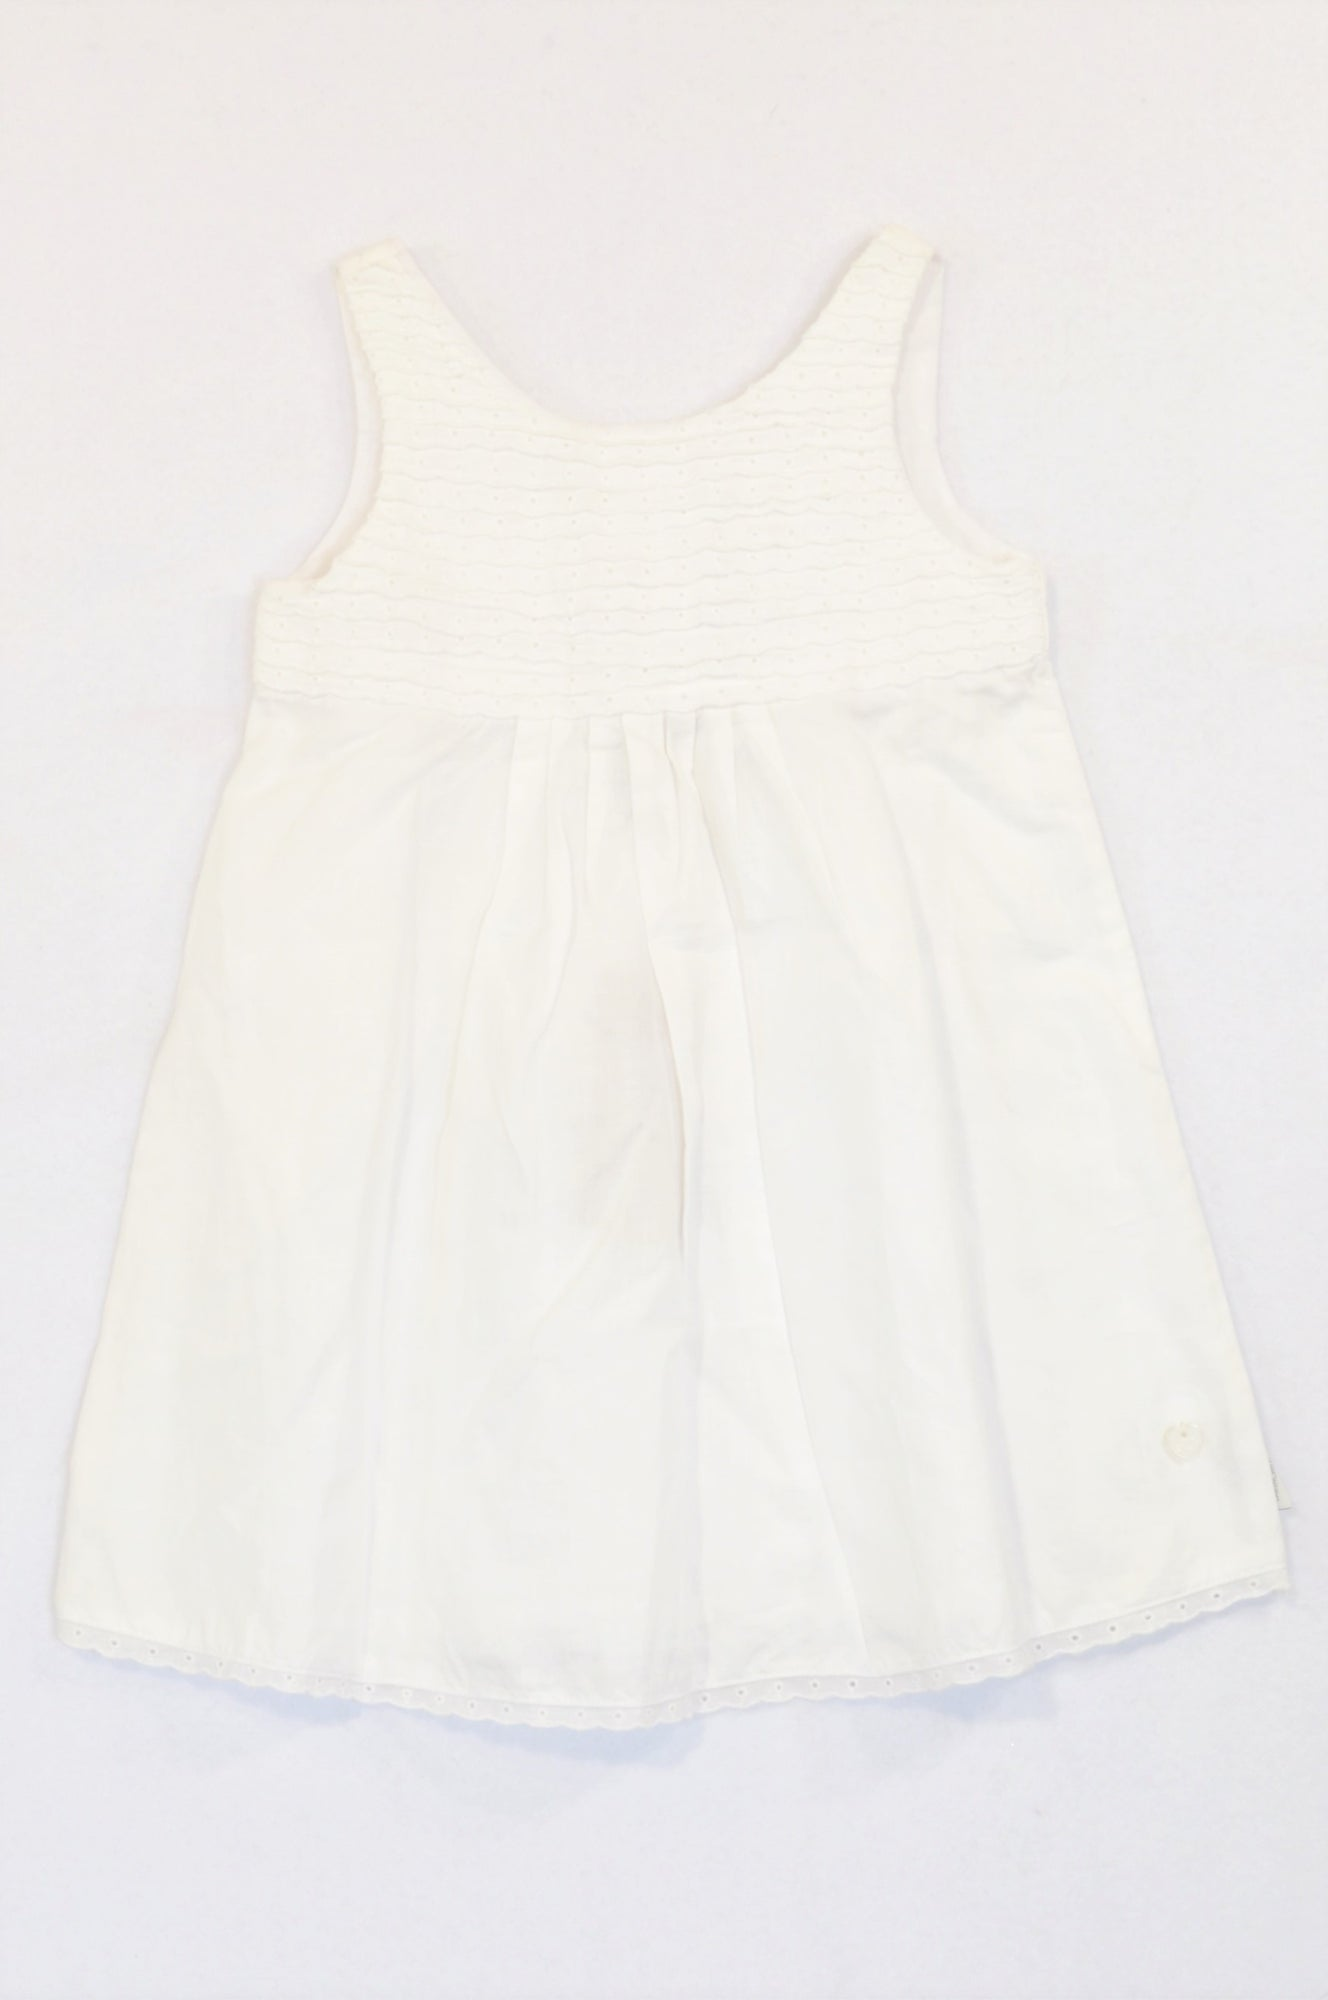 New Earthchild White Eyelet Horizontal Pleats Dress Girls 2-3 years